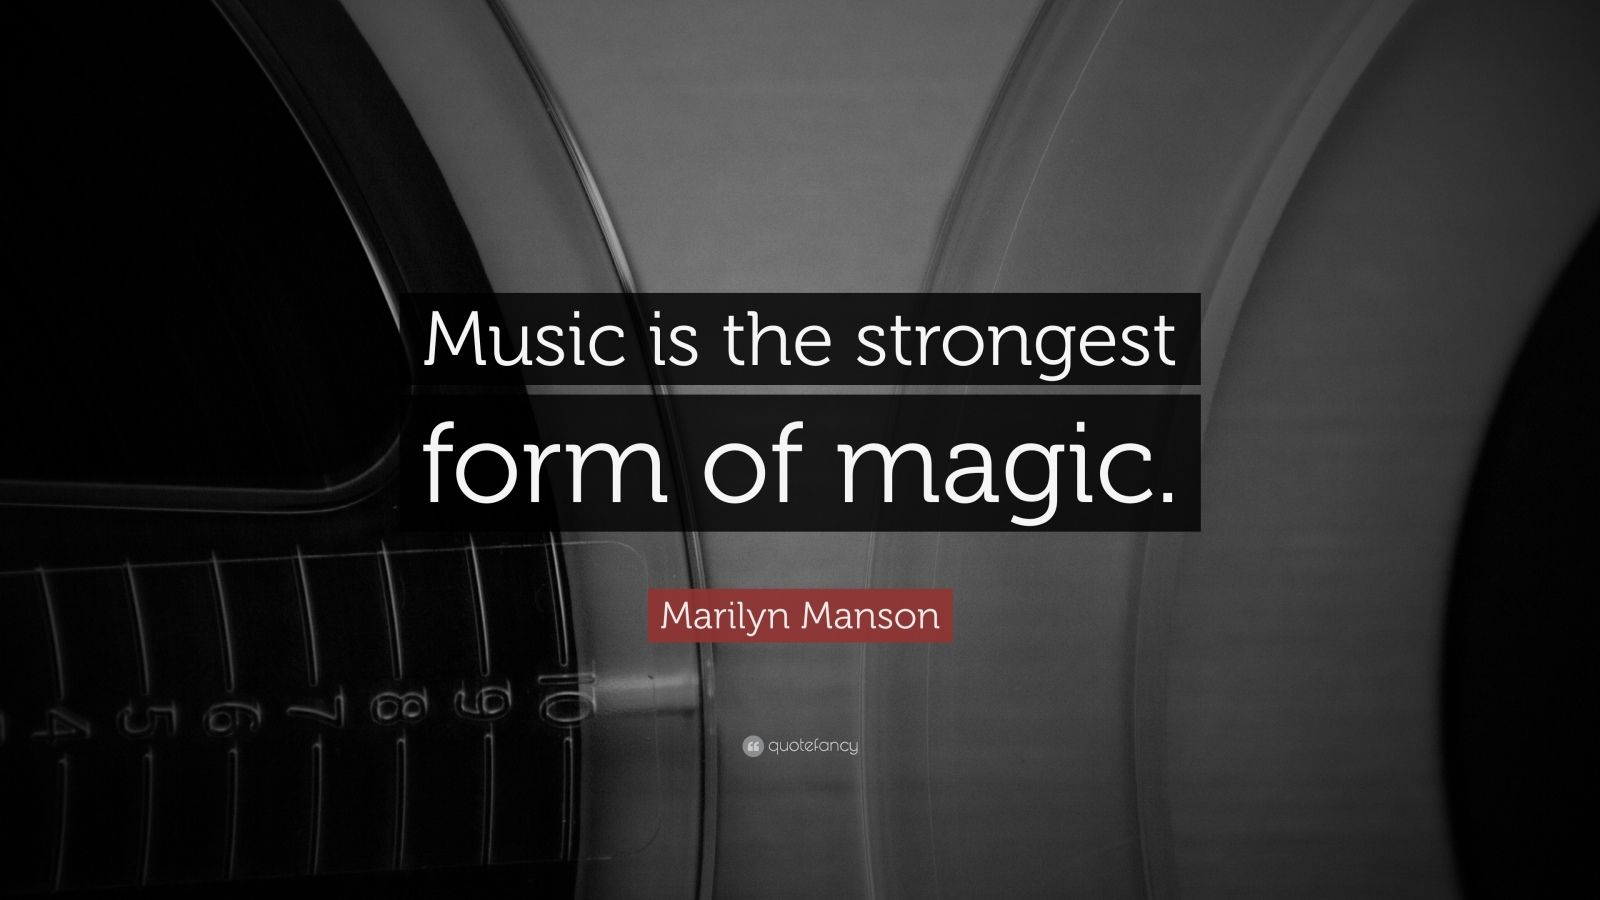 Music Quotes: U201cMusic Is The Strongest Form Of Magic.u201d U2014 Marilyn Manson